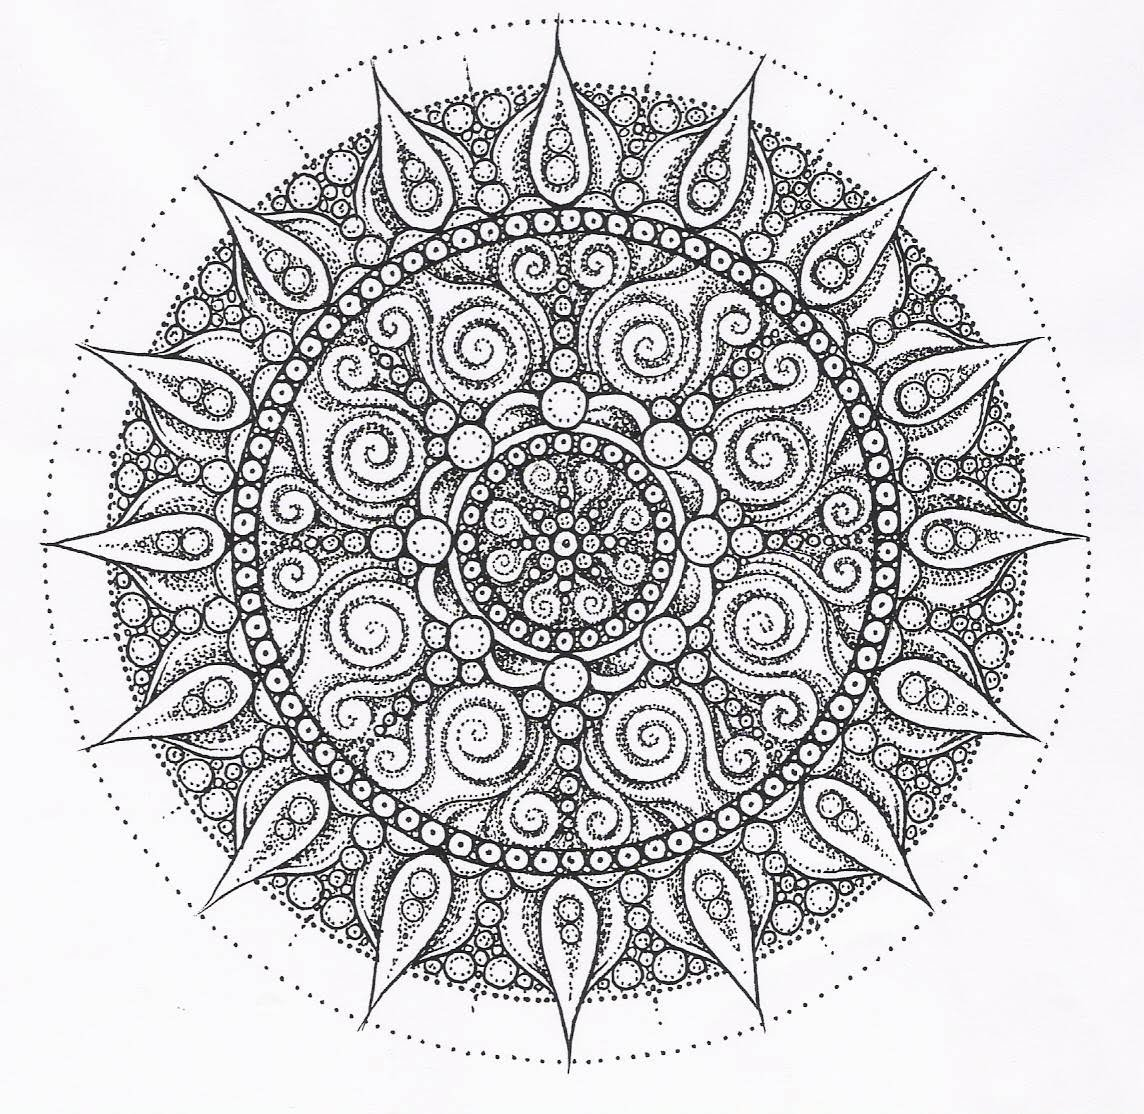 Free Printable Mandala Coloring Pages - free printable mandalas coloring pages adults